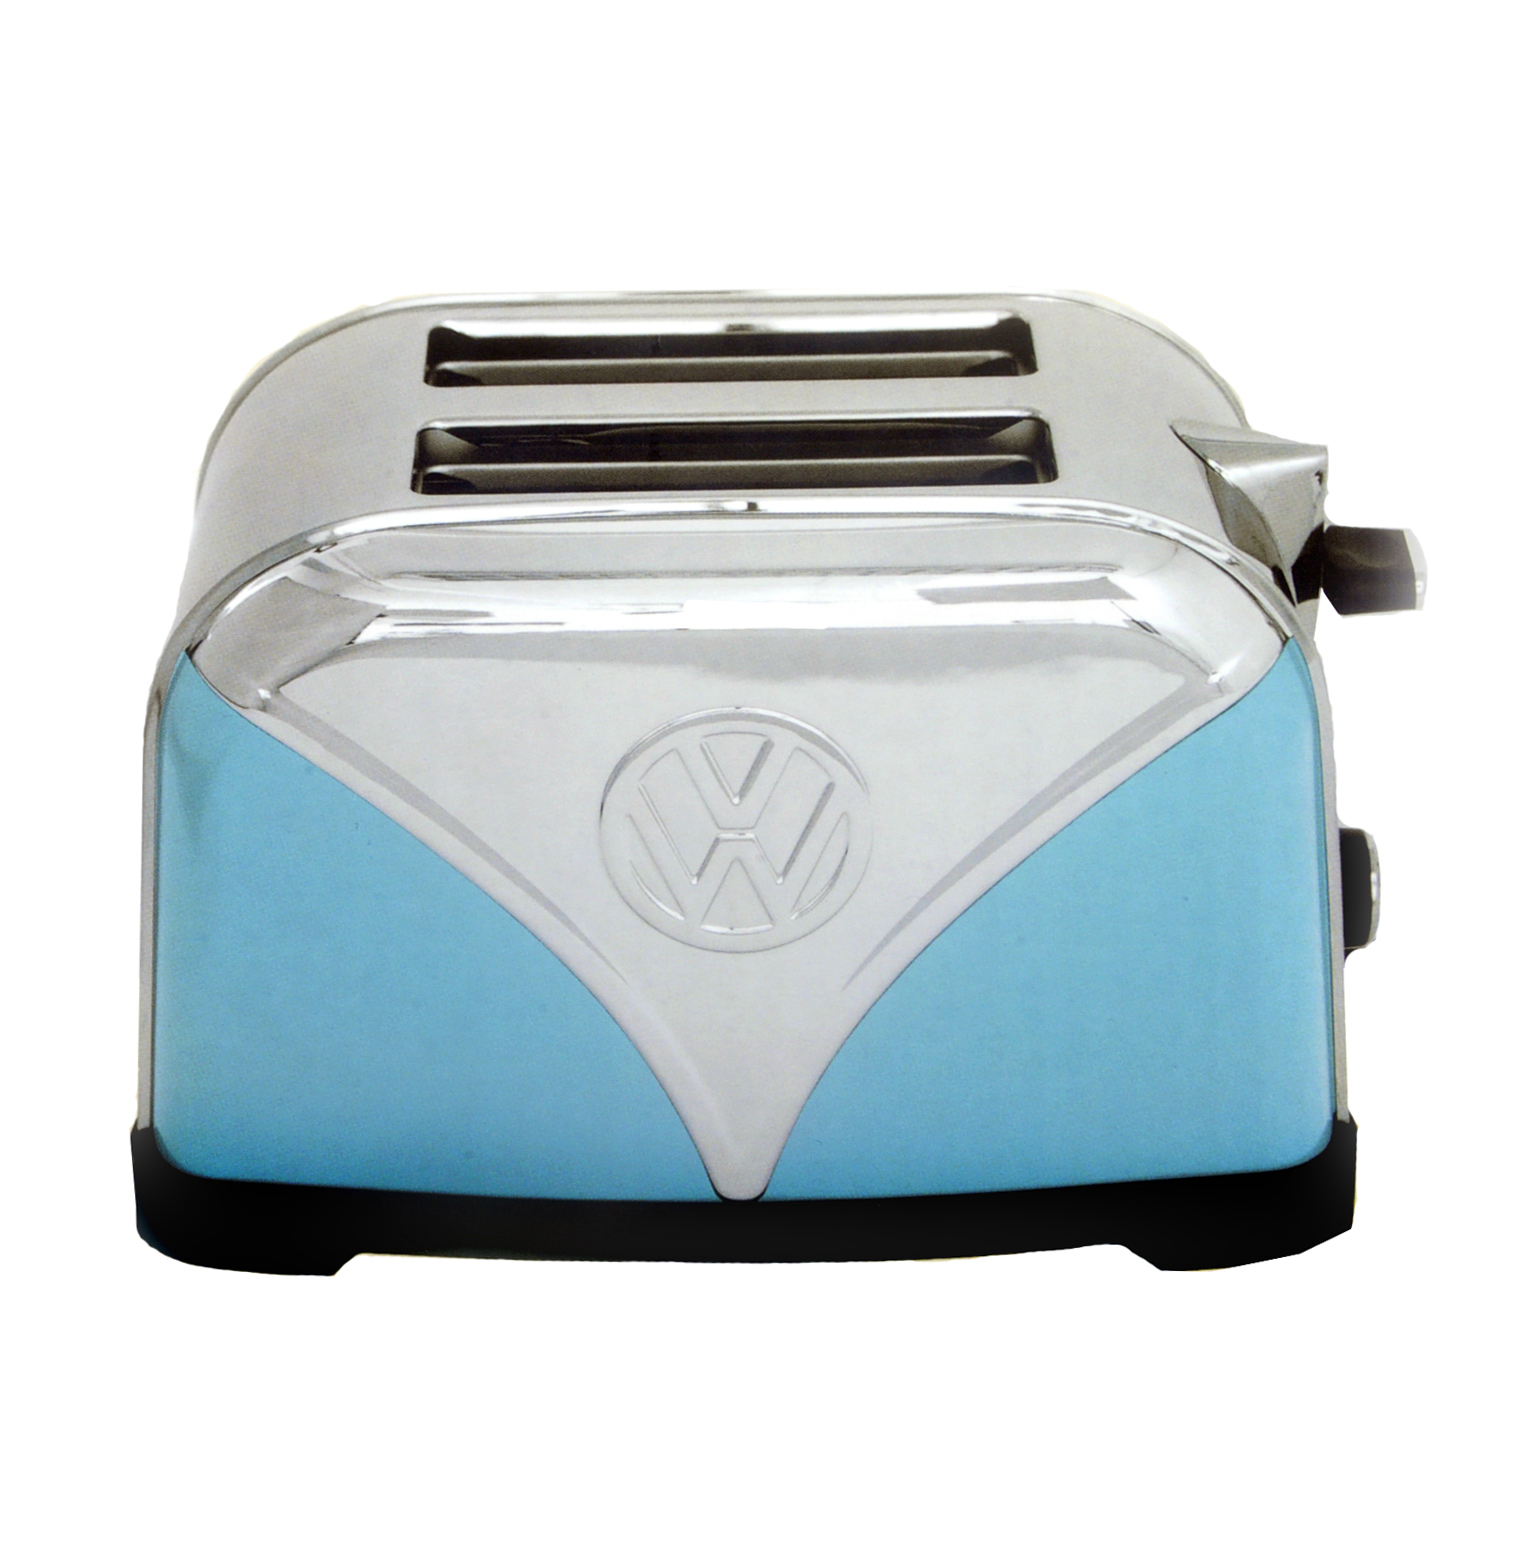 Mini Toaster For Camper ~ Blue volkswagen camper stainless steel toaster pink cat shop